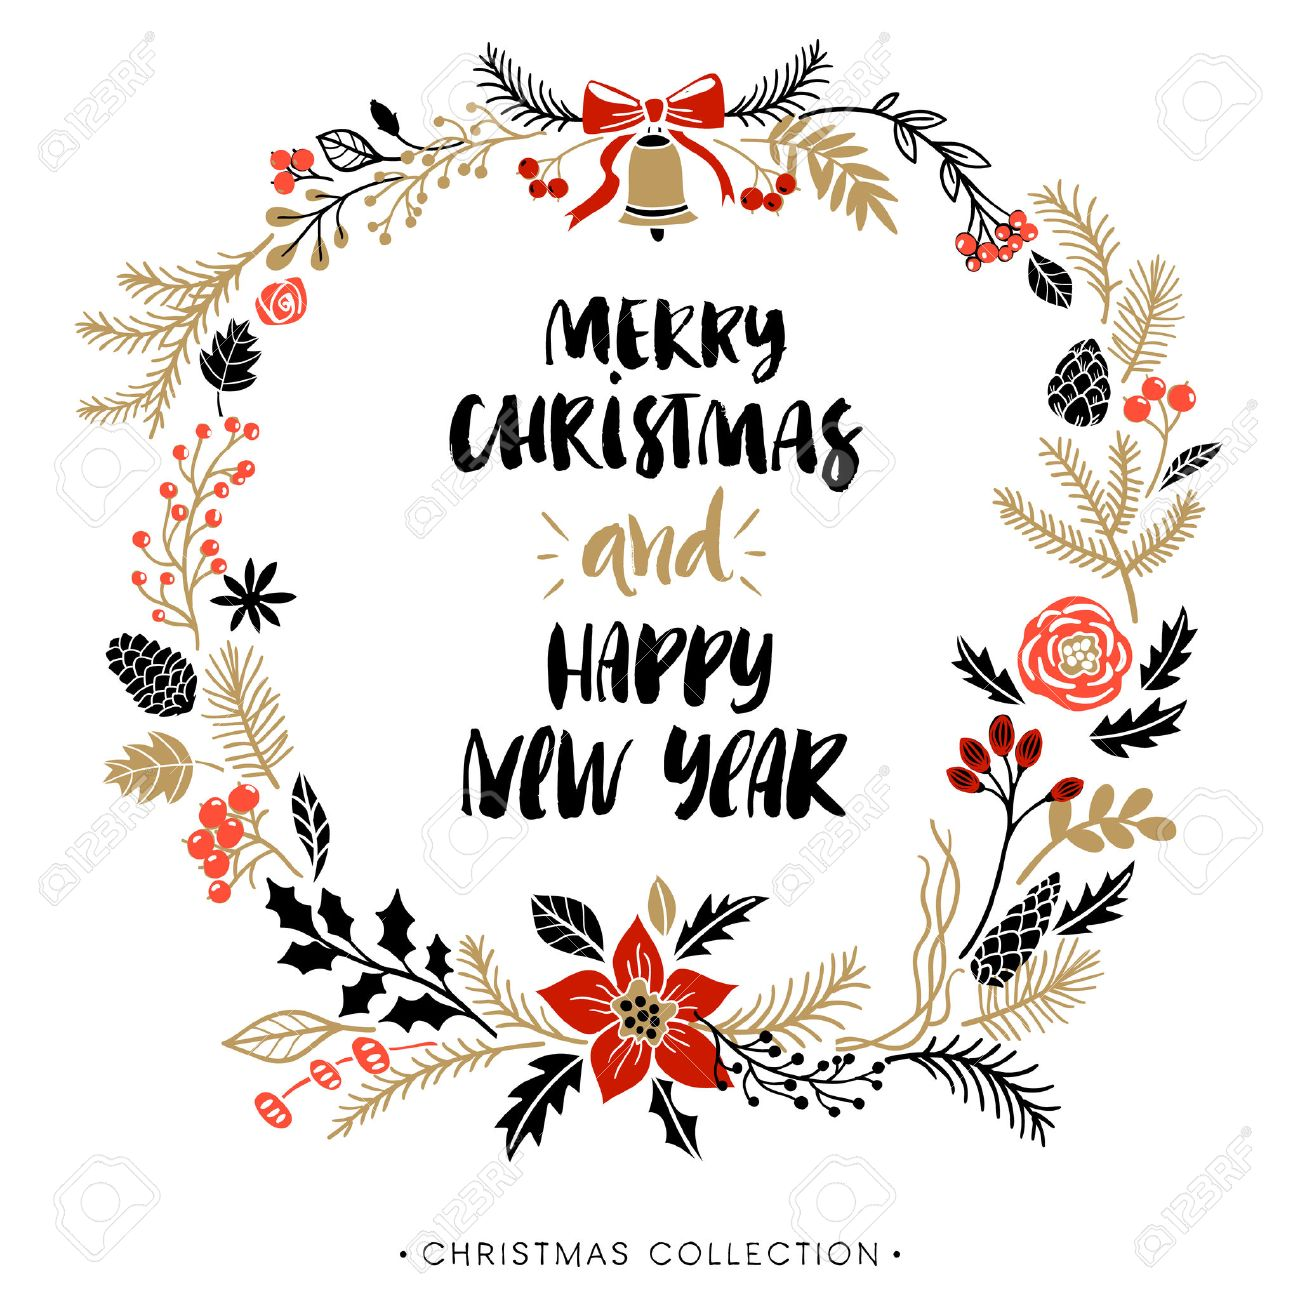 christmas greeting wreath with calligraphy happy new year and merry christmas handwritten modern brush